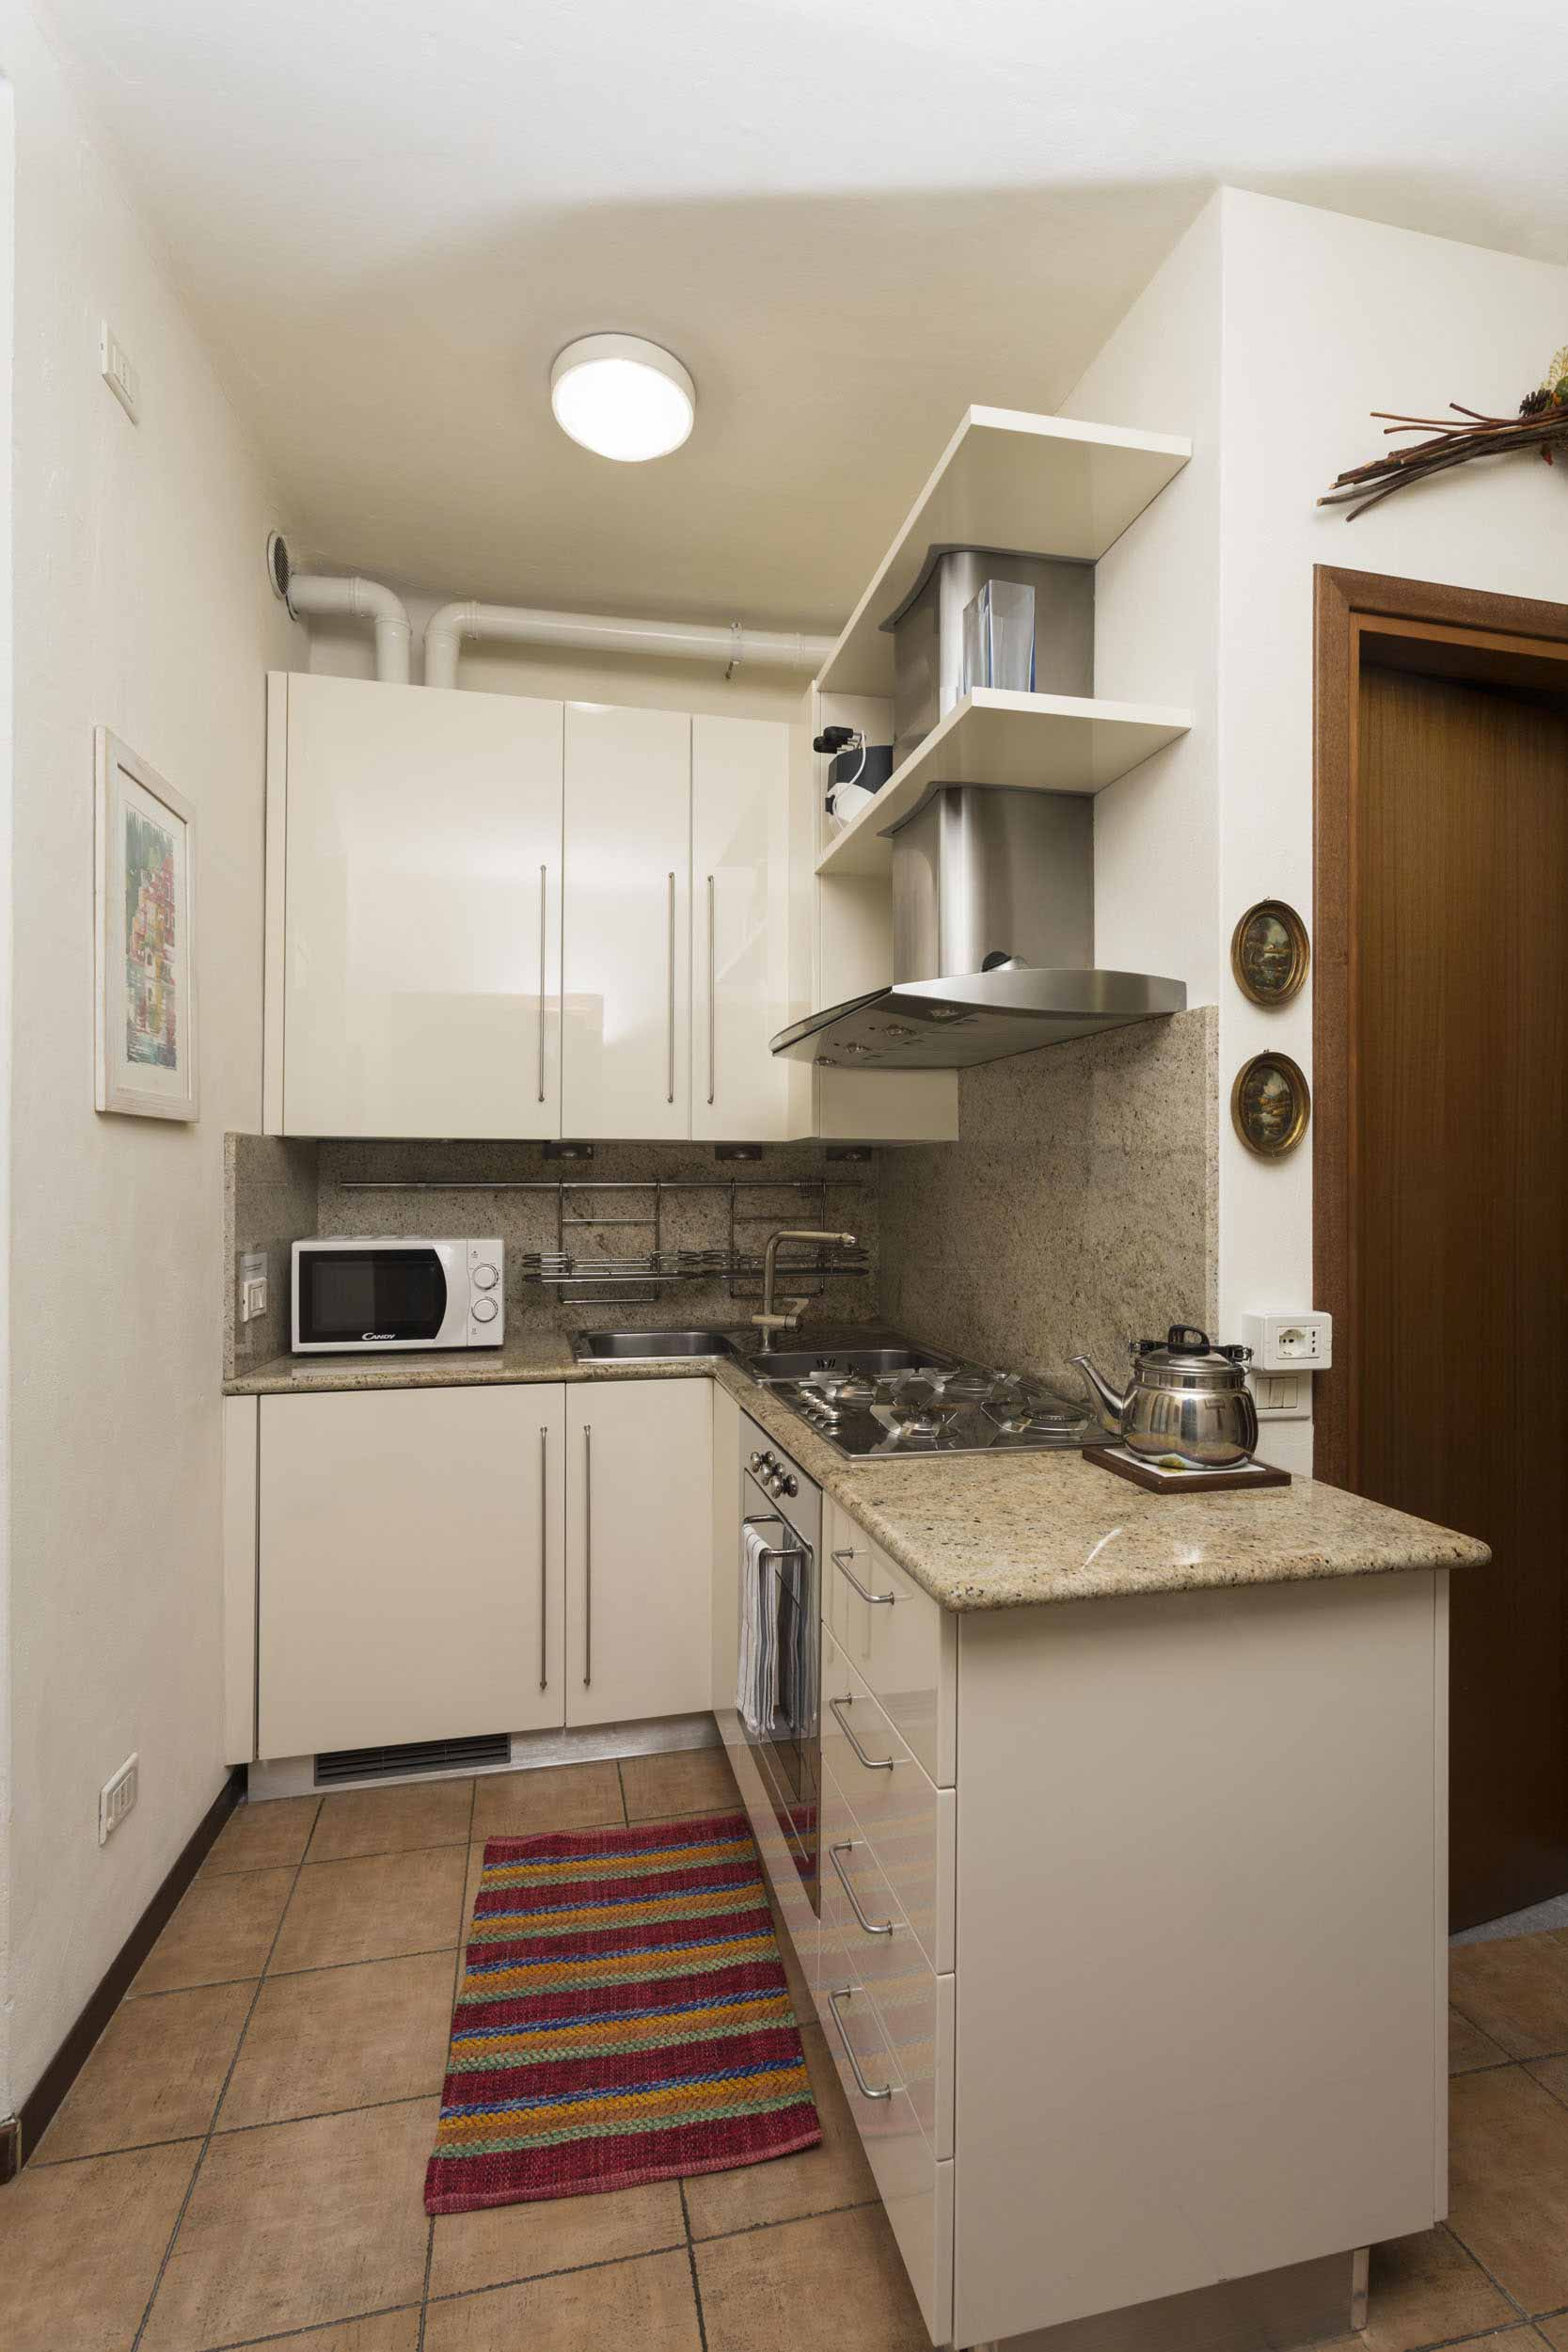 Casa di Mezzo kitchen room